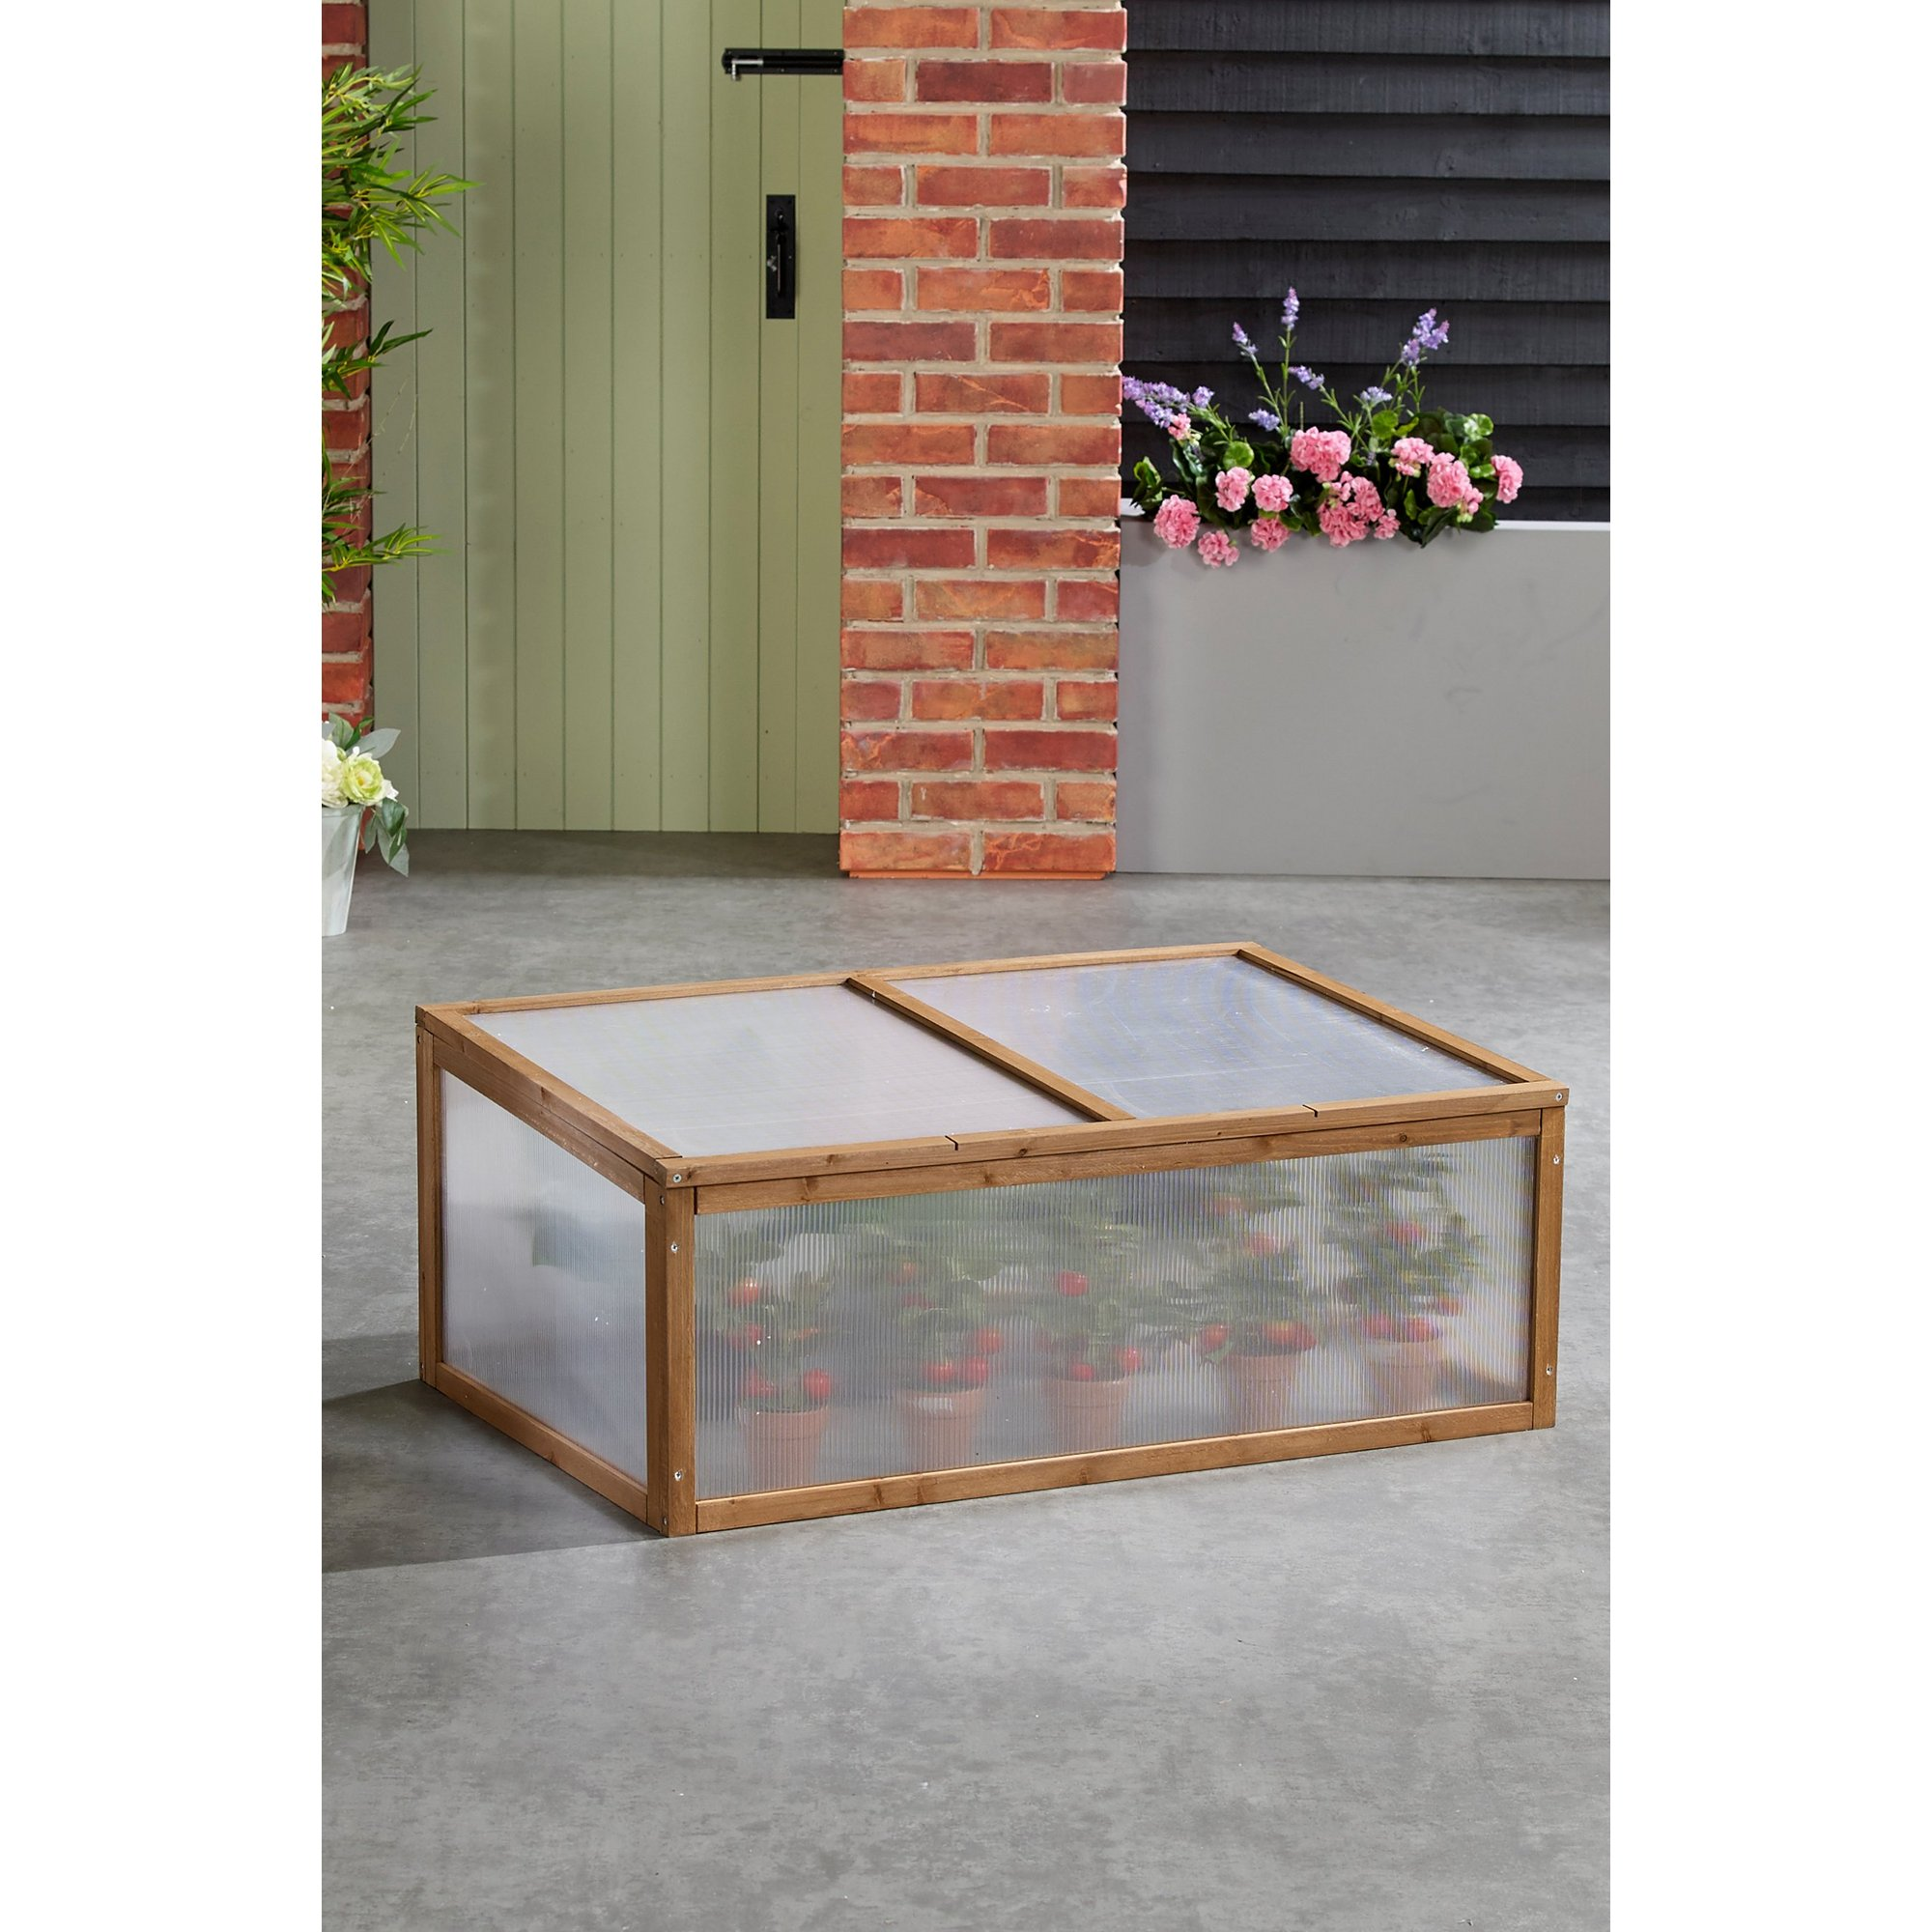 Image of Low Wooden Cold Frame Greenhouse